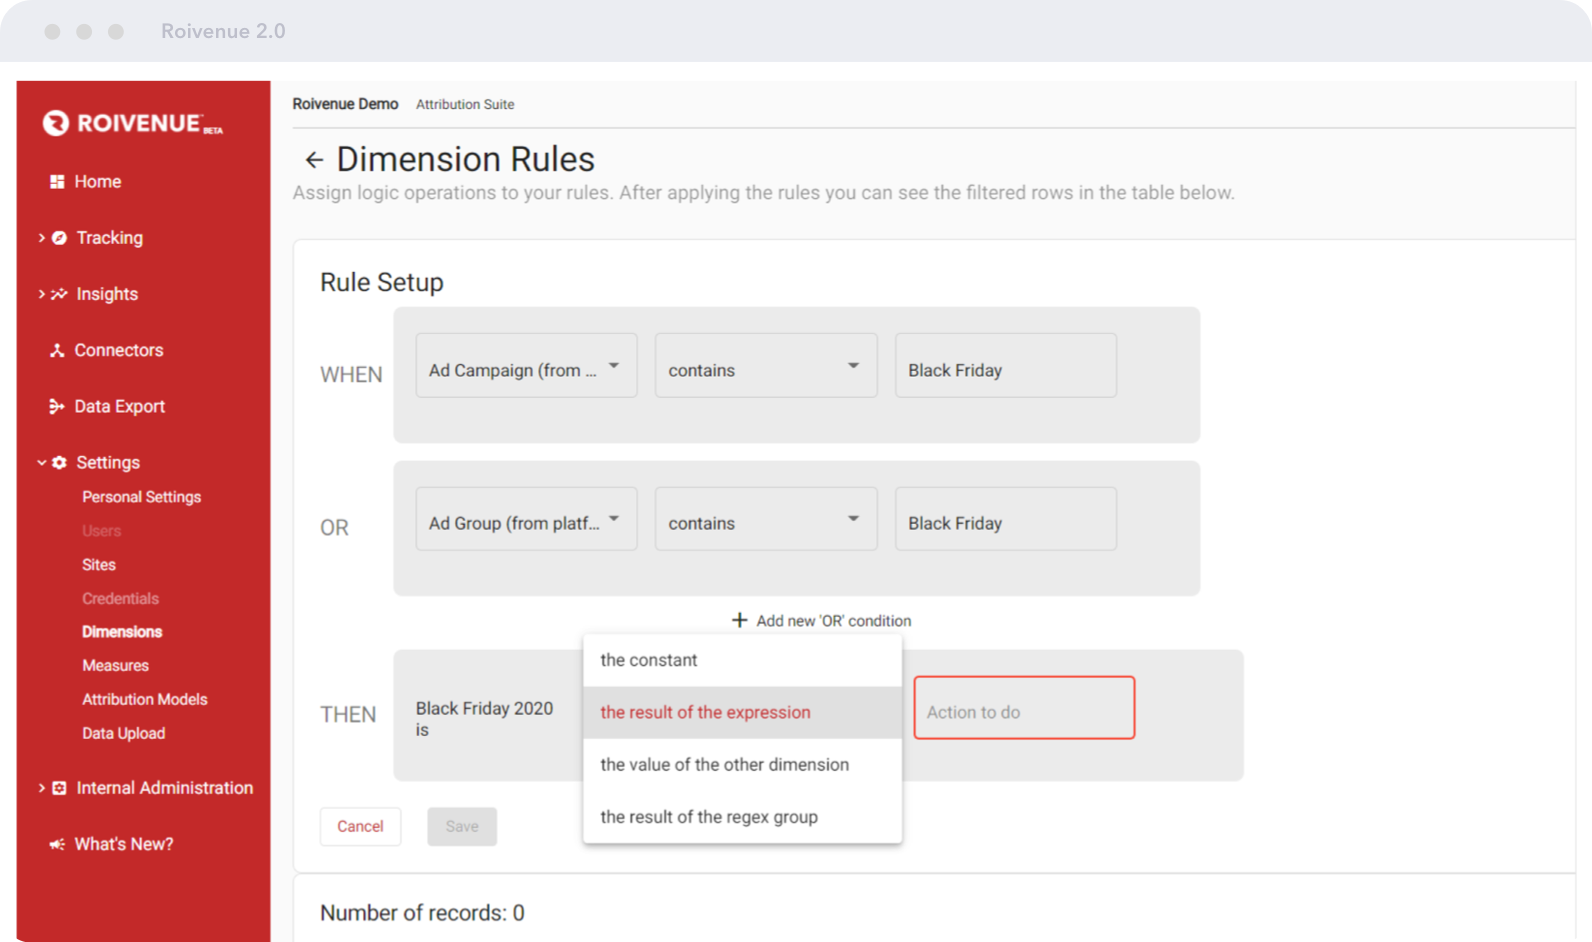 ROIVENUE Metrics editor   Customize your dimensions and metrics   Create custom dimensions or metrics to collect and analyze the data that matters to your business.